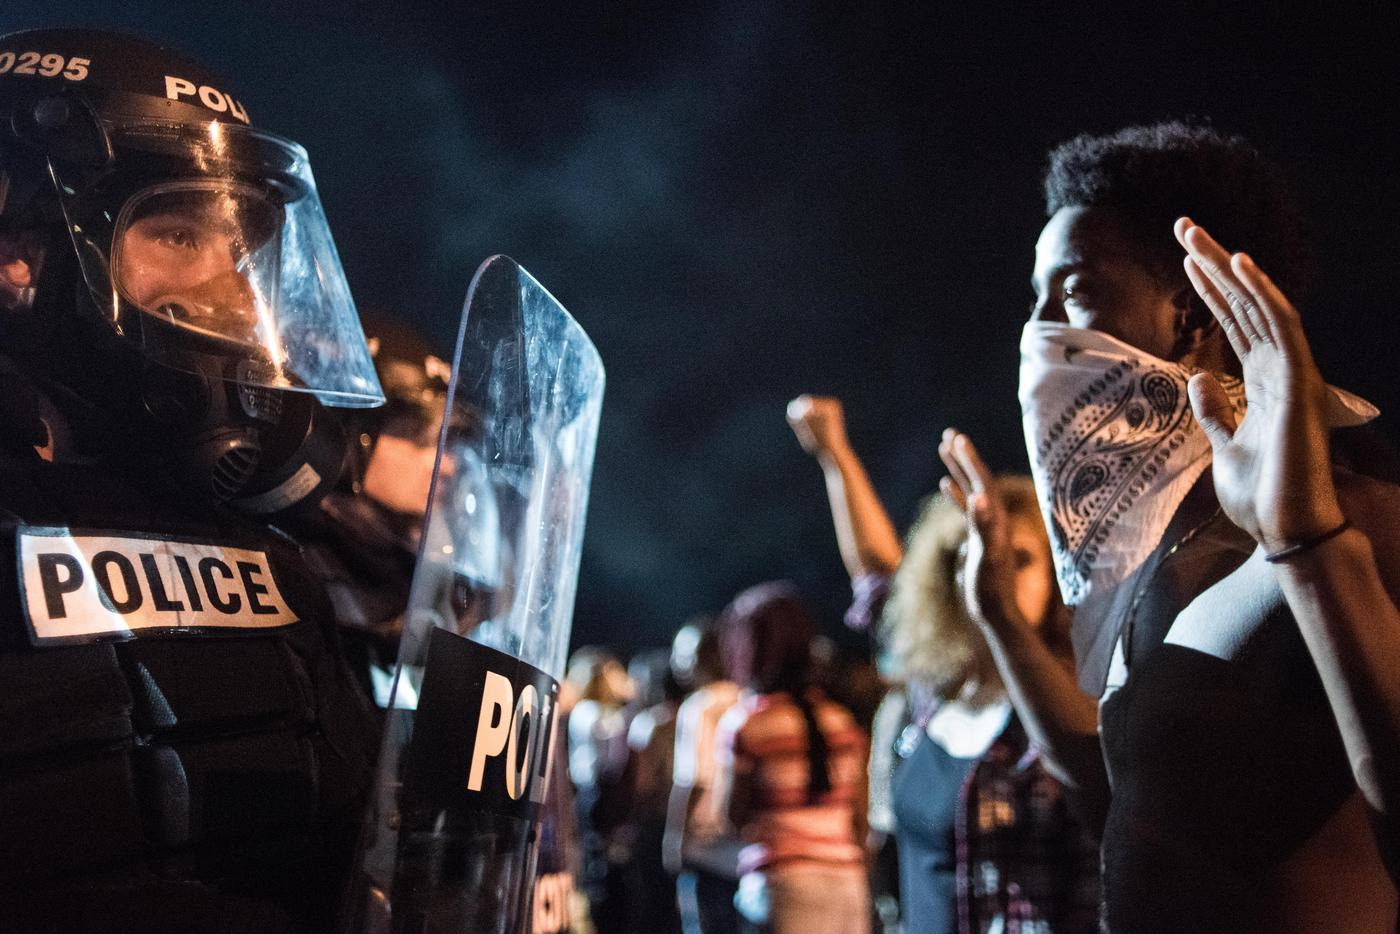 CHARLOTTE, NC - SEPTEMBER 21: Police officers face off with protesters on the I-85 (Interstate 85) during protests in the early hours of September 21, 2016 in Charlotte, North Carolina. The protests began last night, following the fatal shooting of 43-year-old Keith Lamont Scott by a police officer at an apartment complex near UNC Charlotte. (Photo by Sean Rayford/Getty Images)